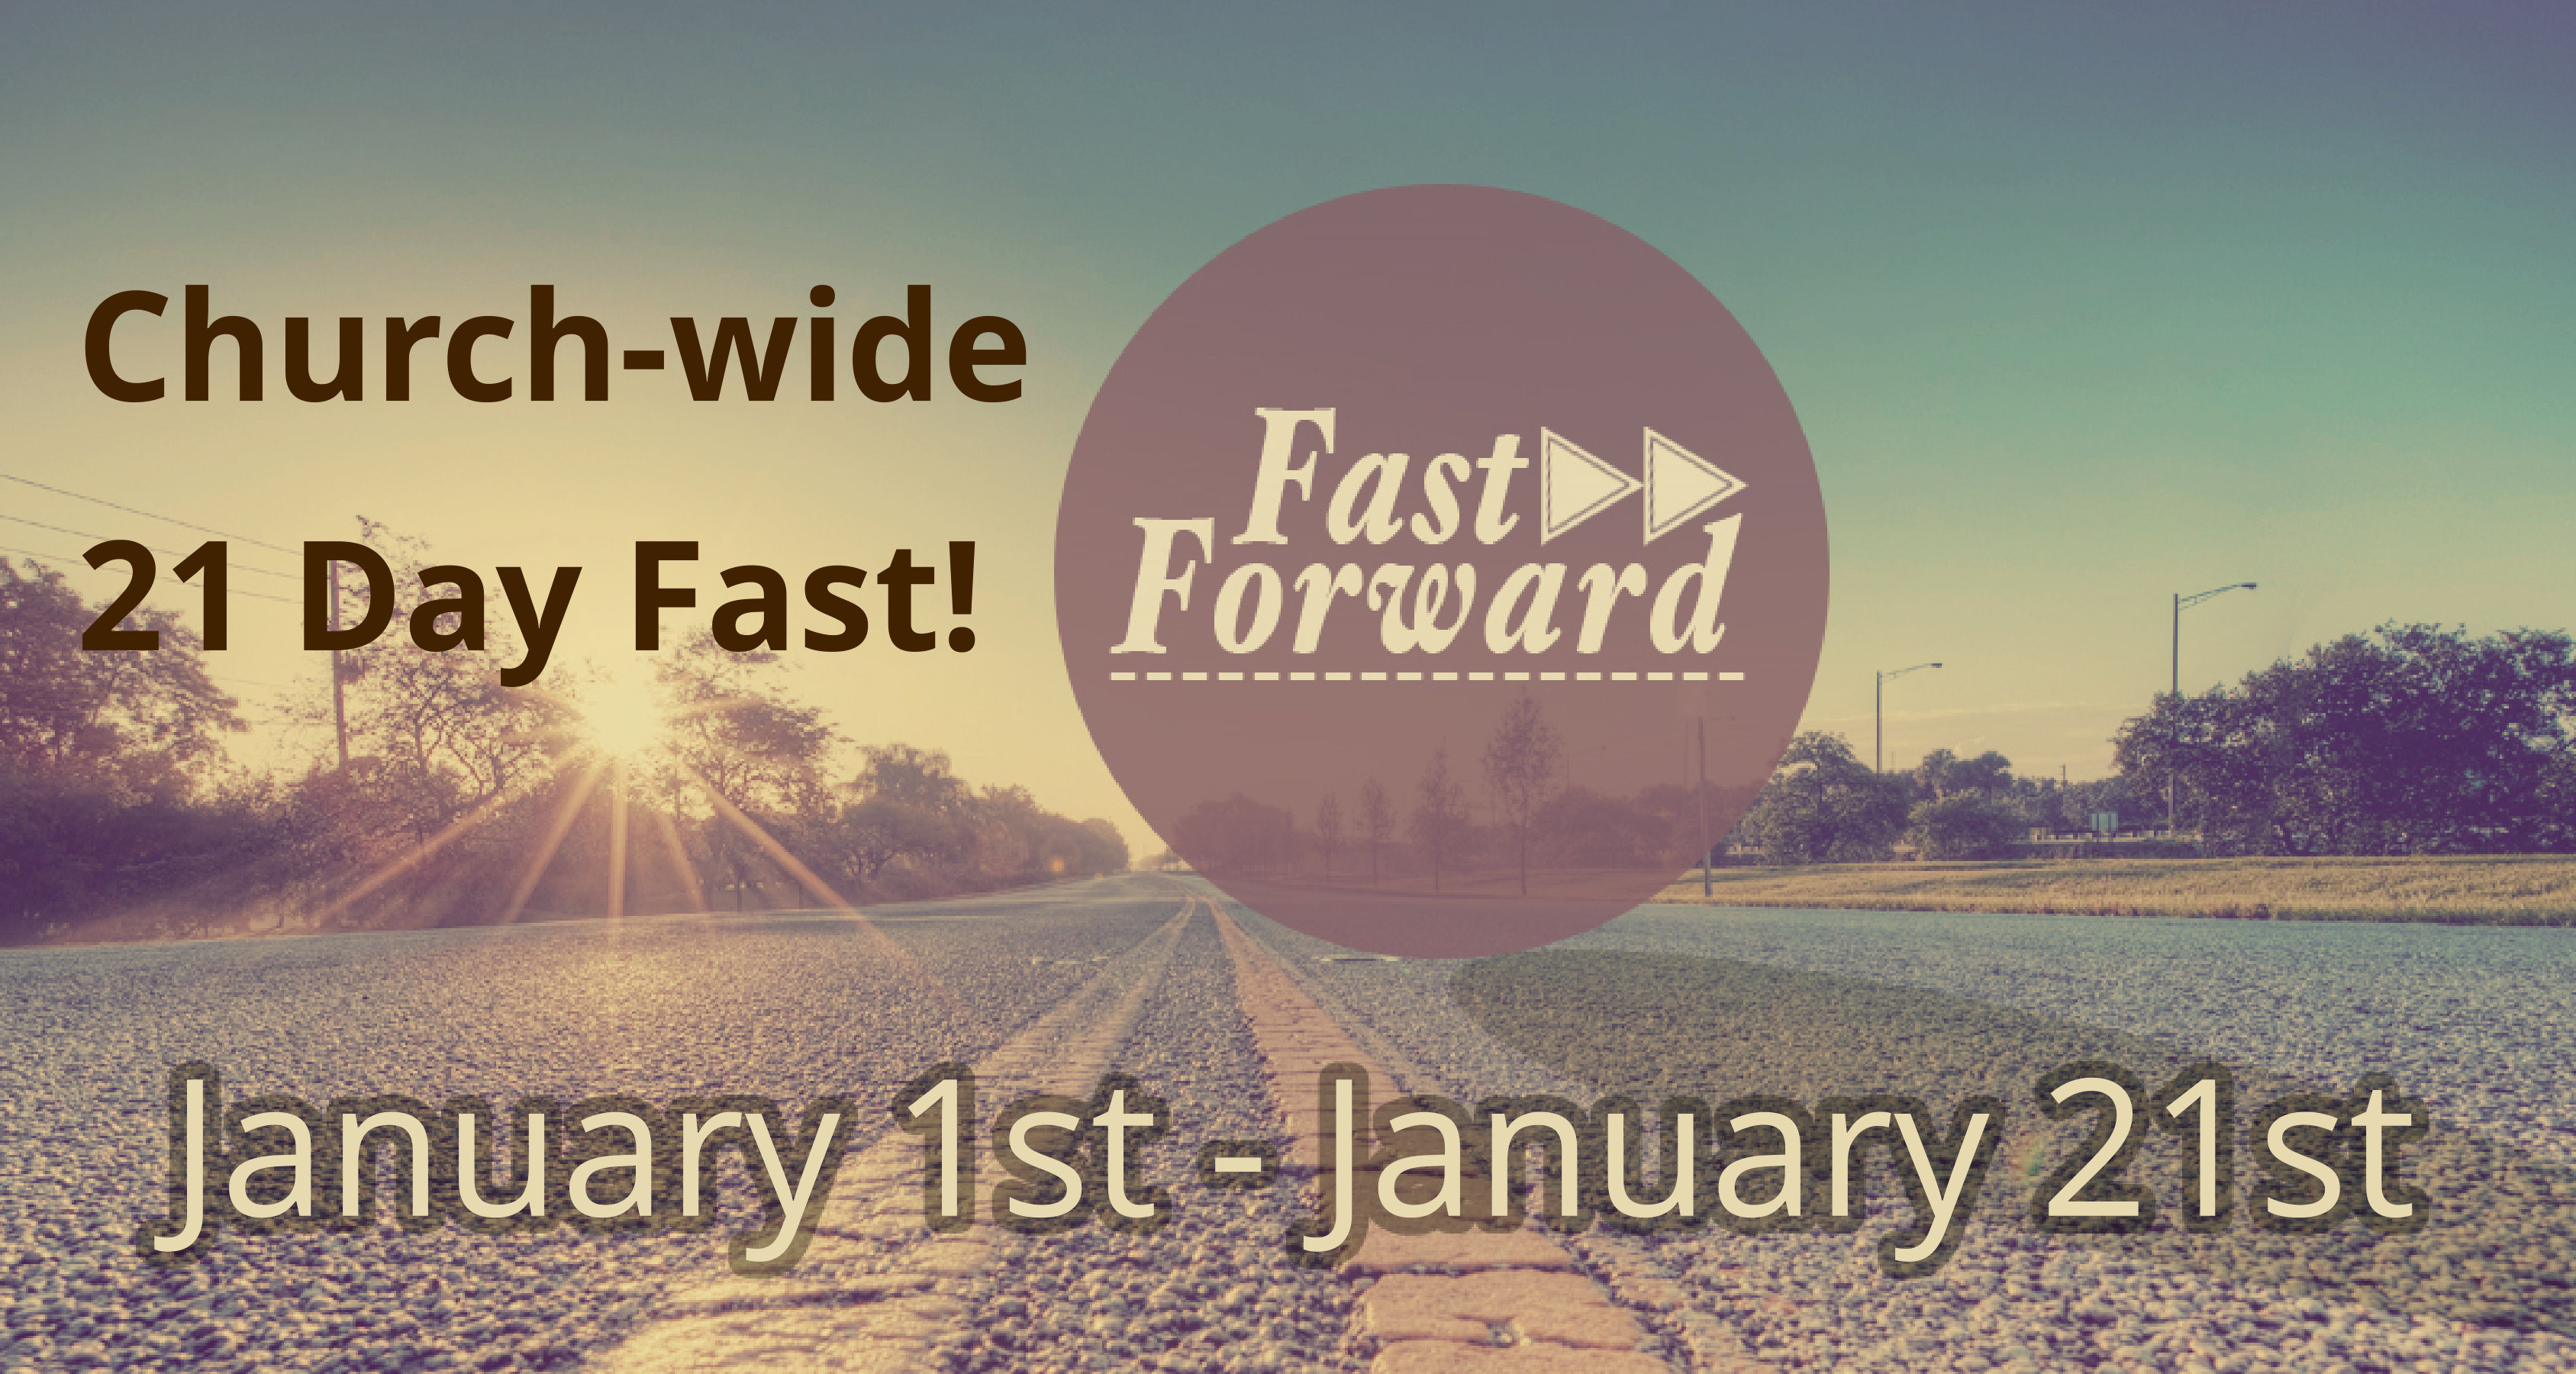 Church-wide 21 Day Fast Starting January 1st! - Threshold Church